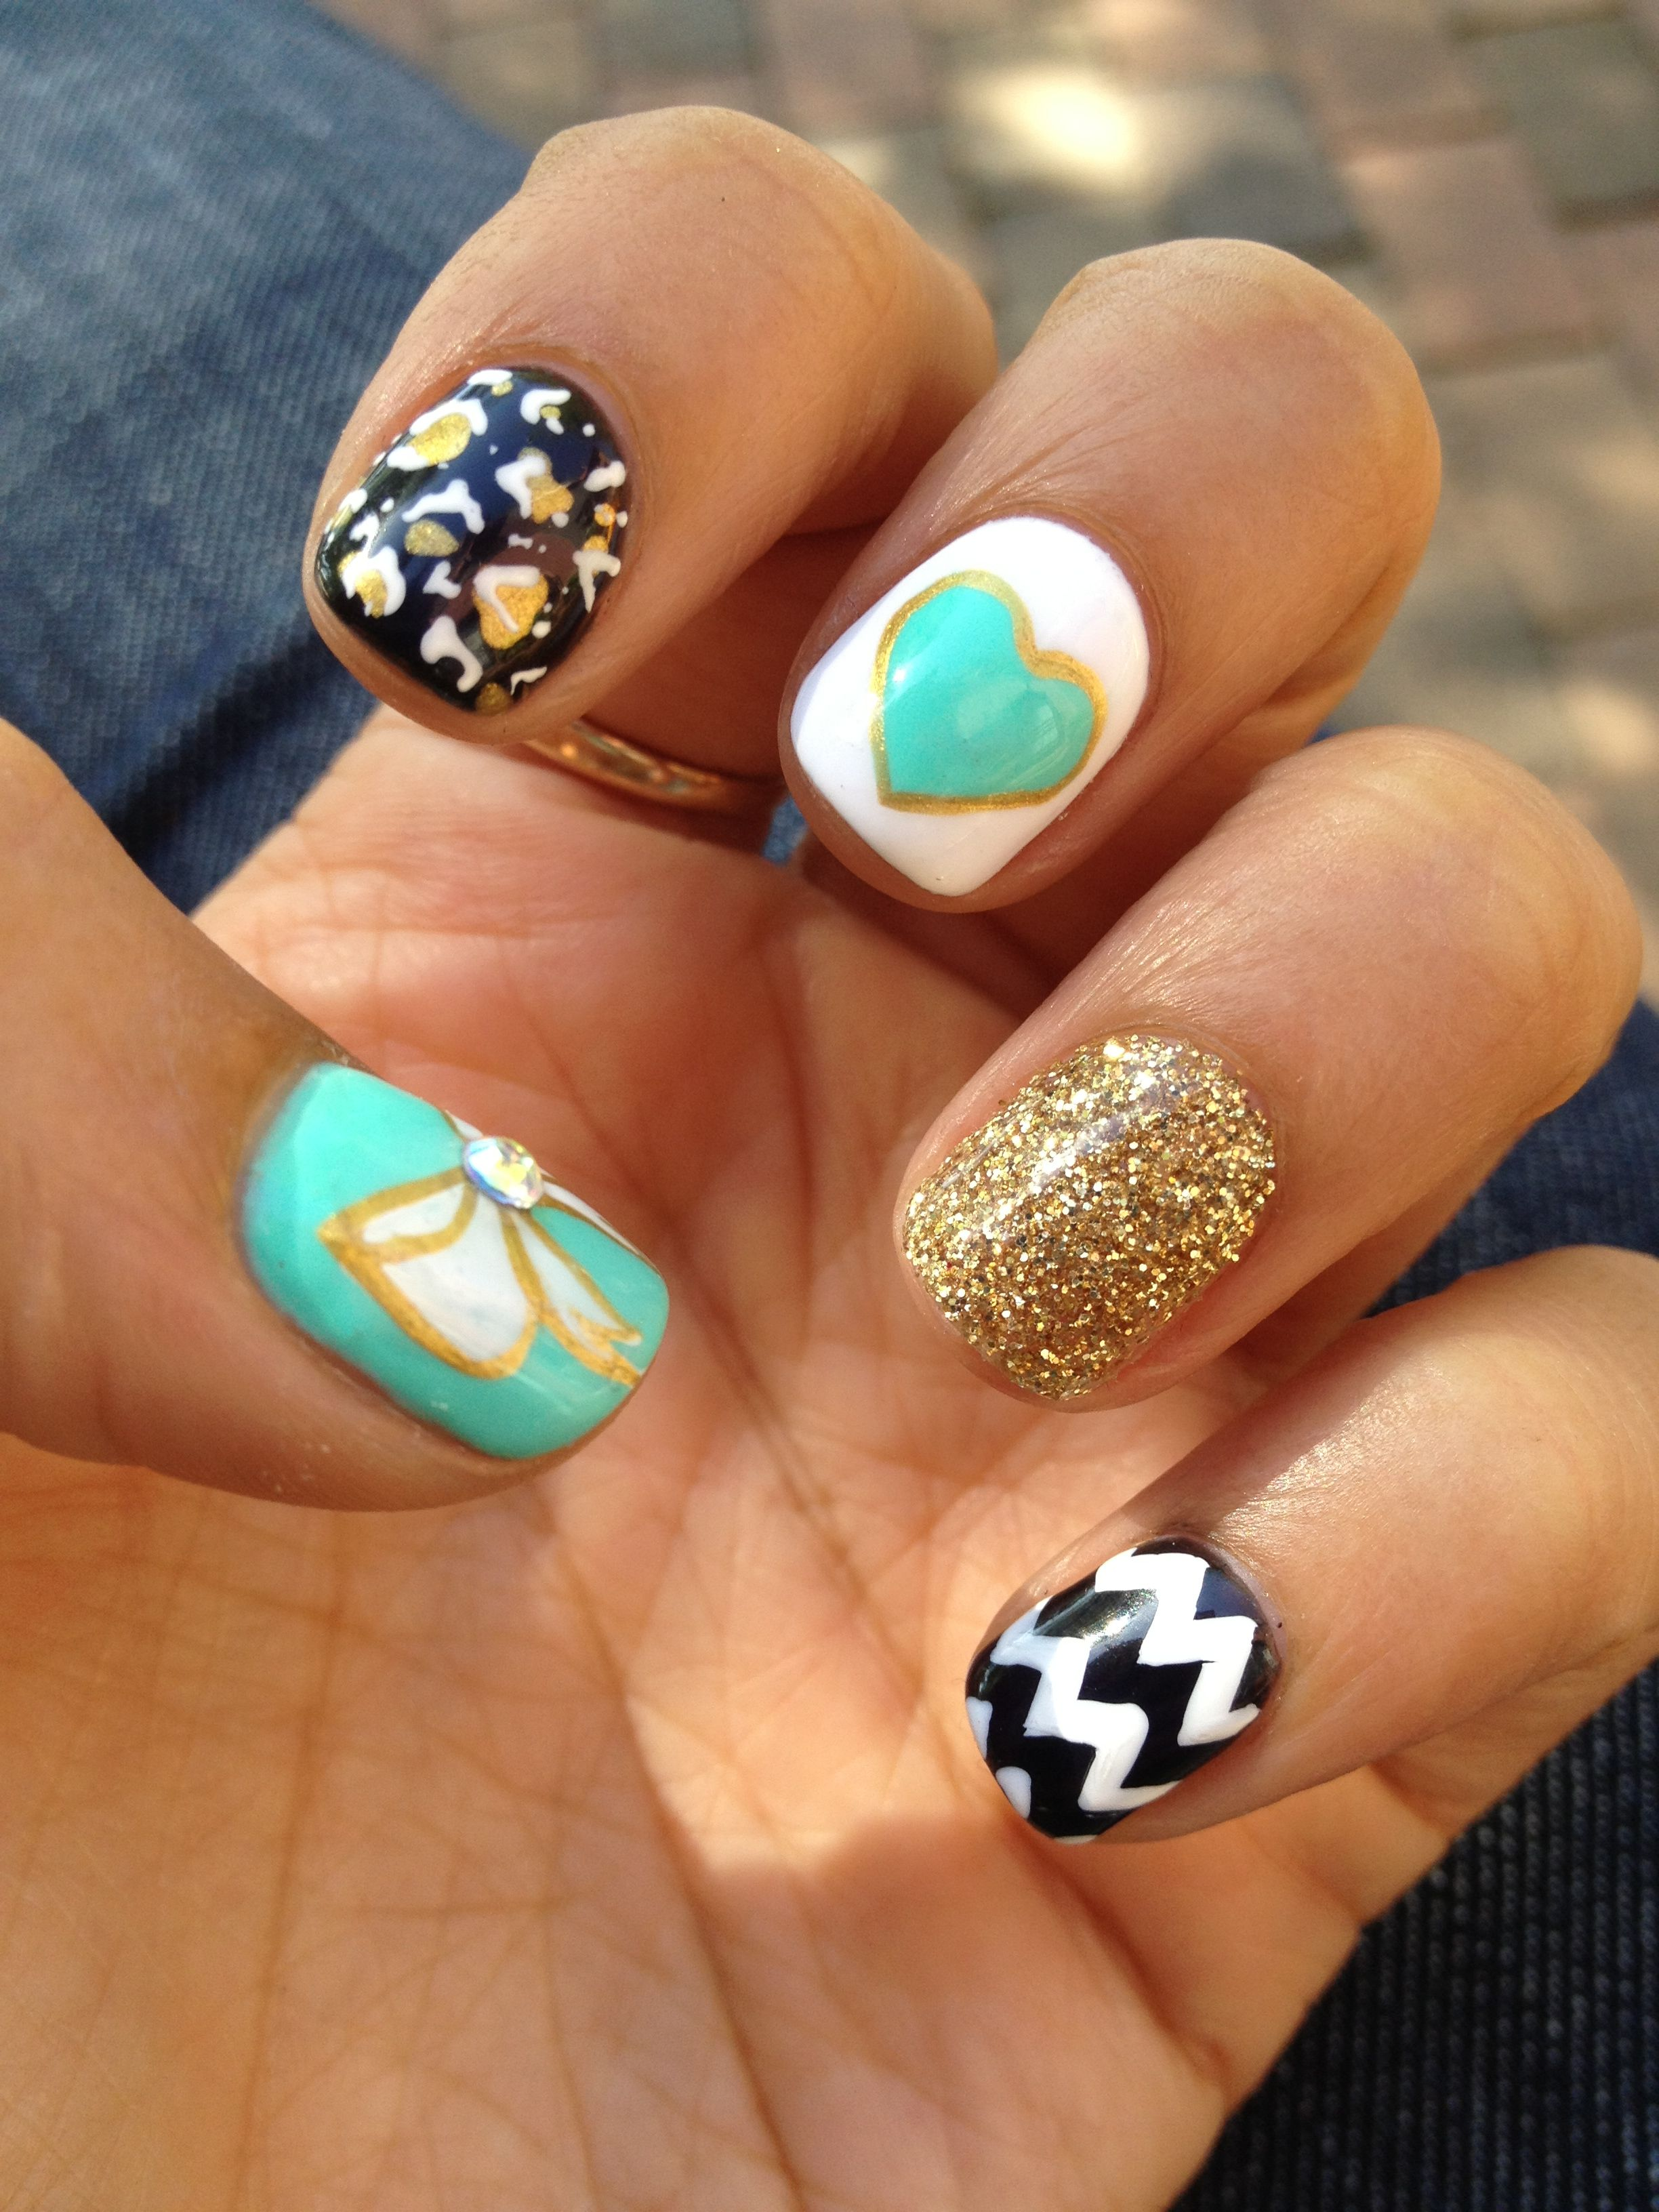 Every nail a different design. Cute!! | Beauty | Pinterest